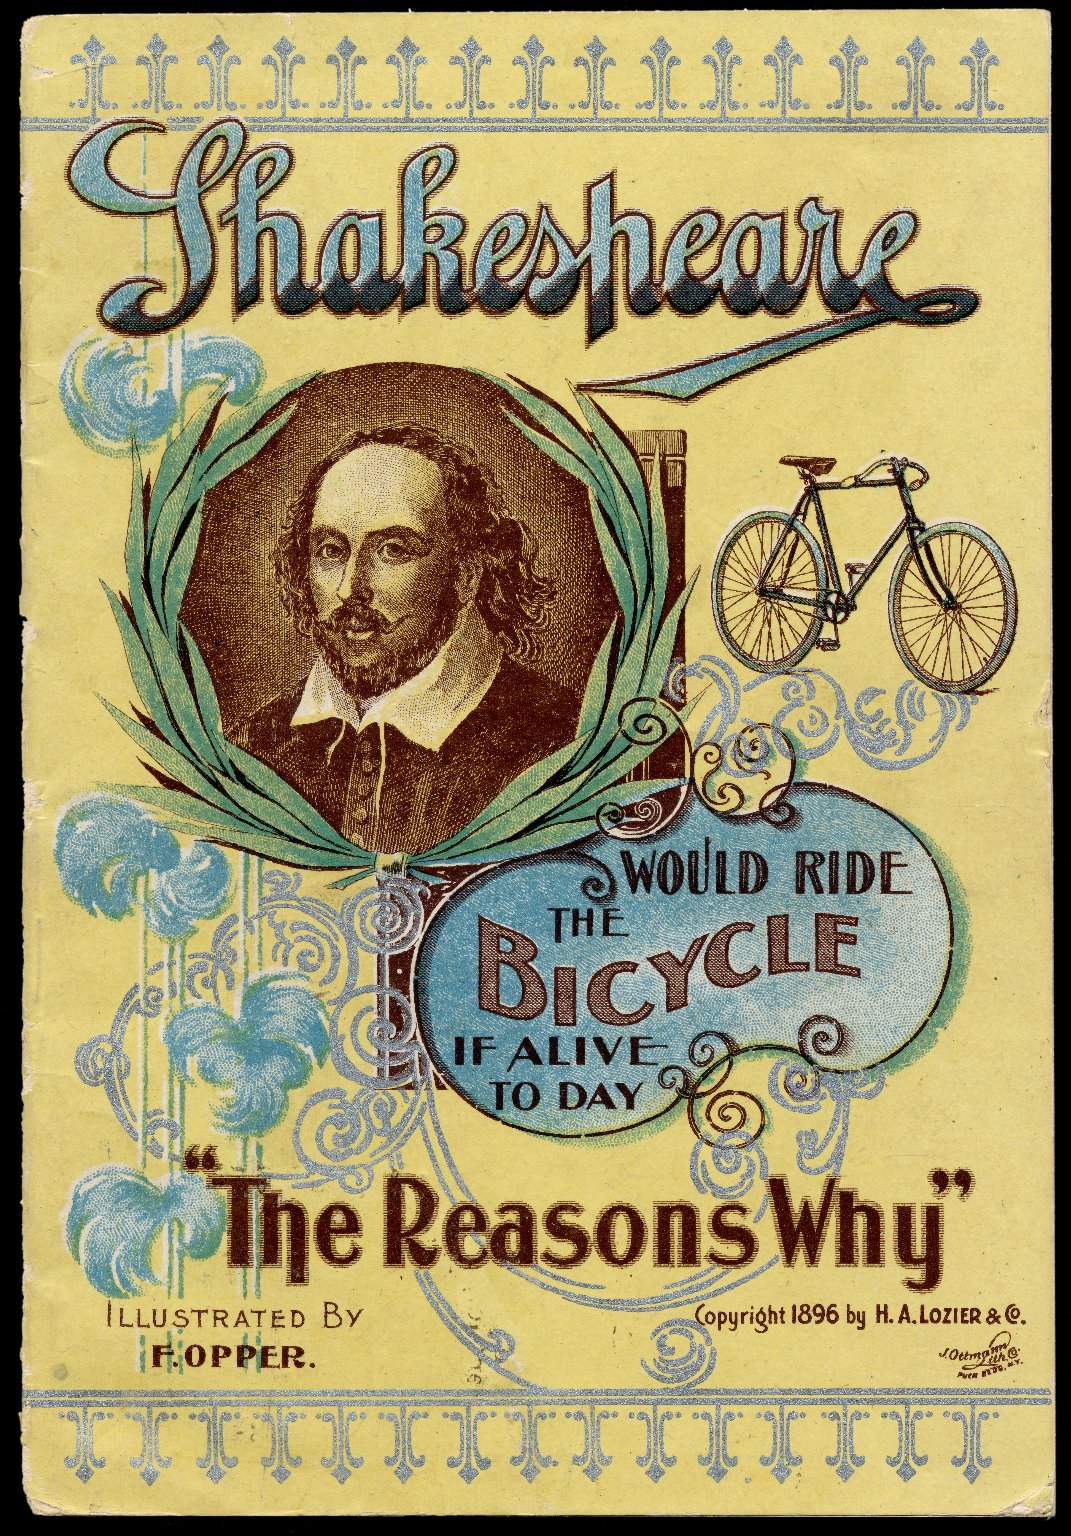 Cover of a 1896 advertising pamphlet for bicycles featuring a portrait of Shakespeare